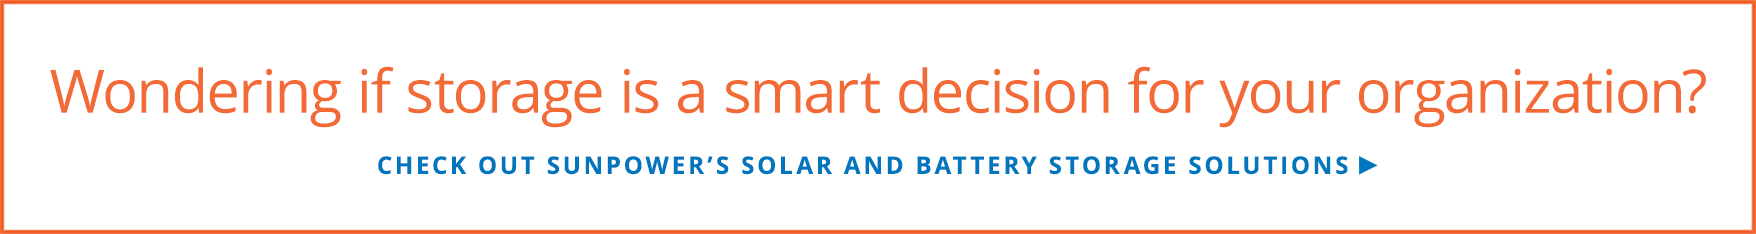 Check out SunPower's solar and battery storage solutions